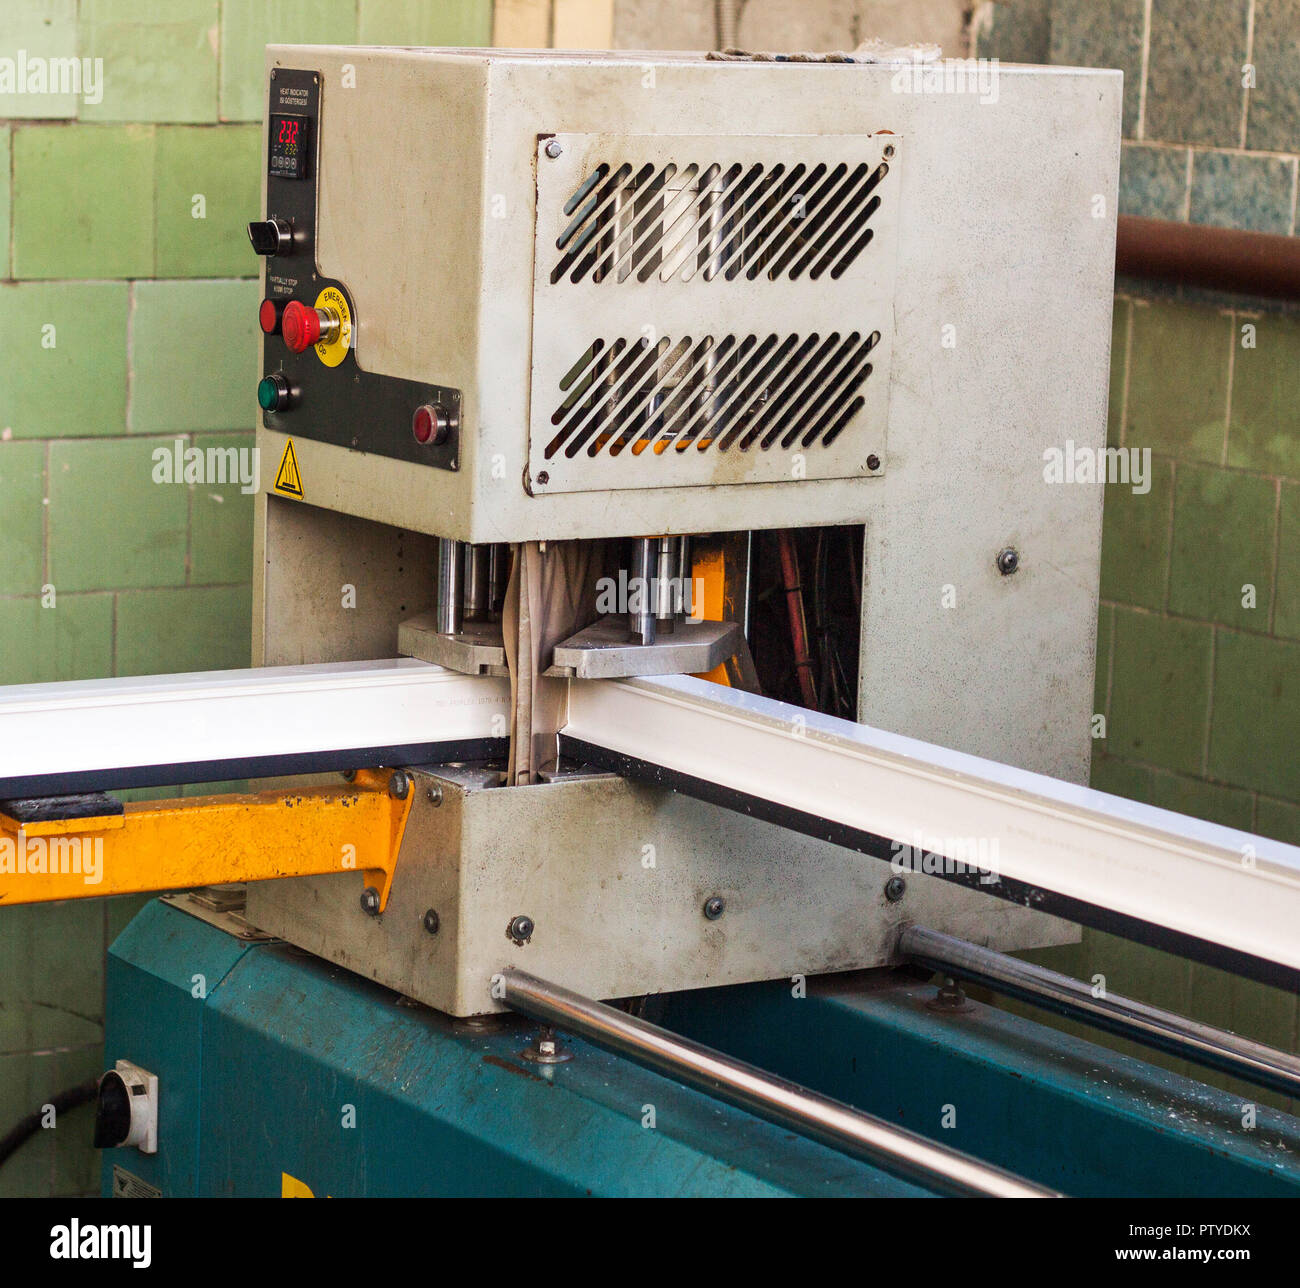 Production of pvc windows, gluing of plastic corners of windows, machine for the production of pvc windows, profile - Stock Image